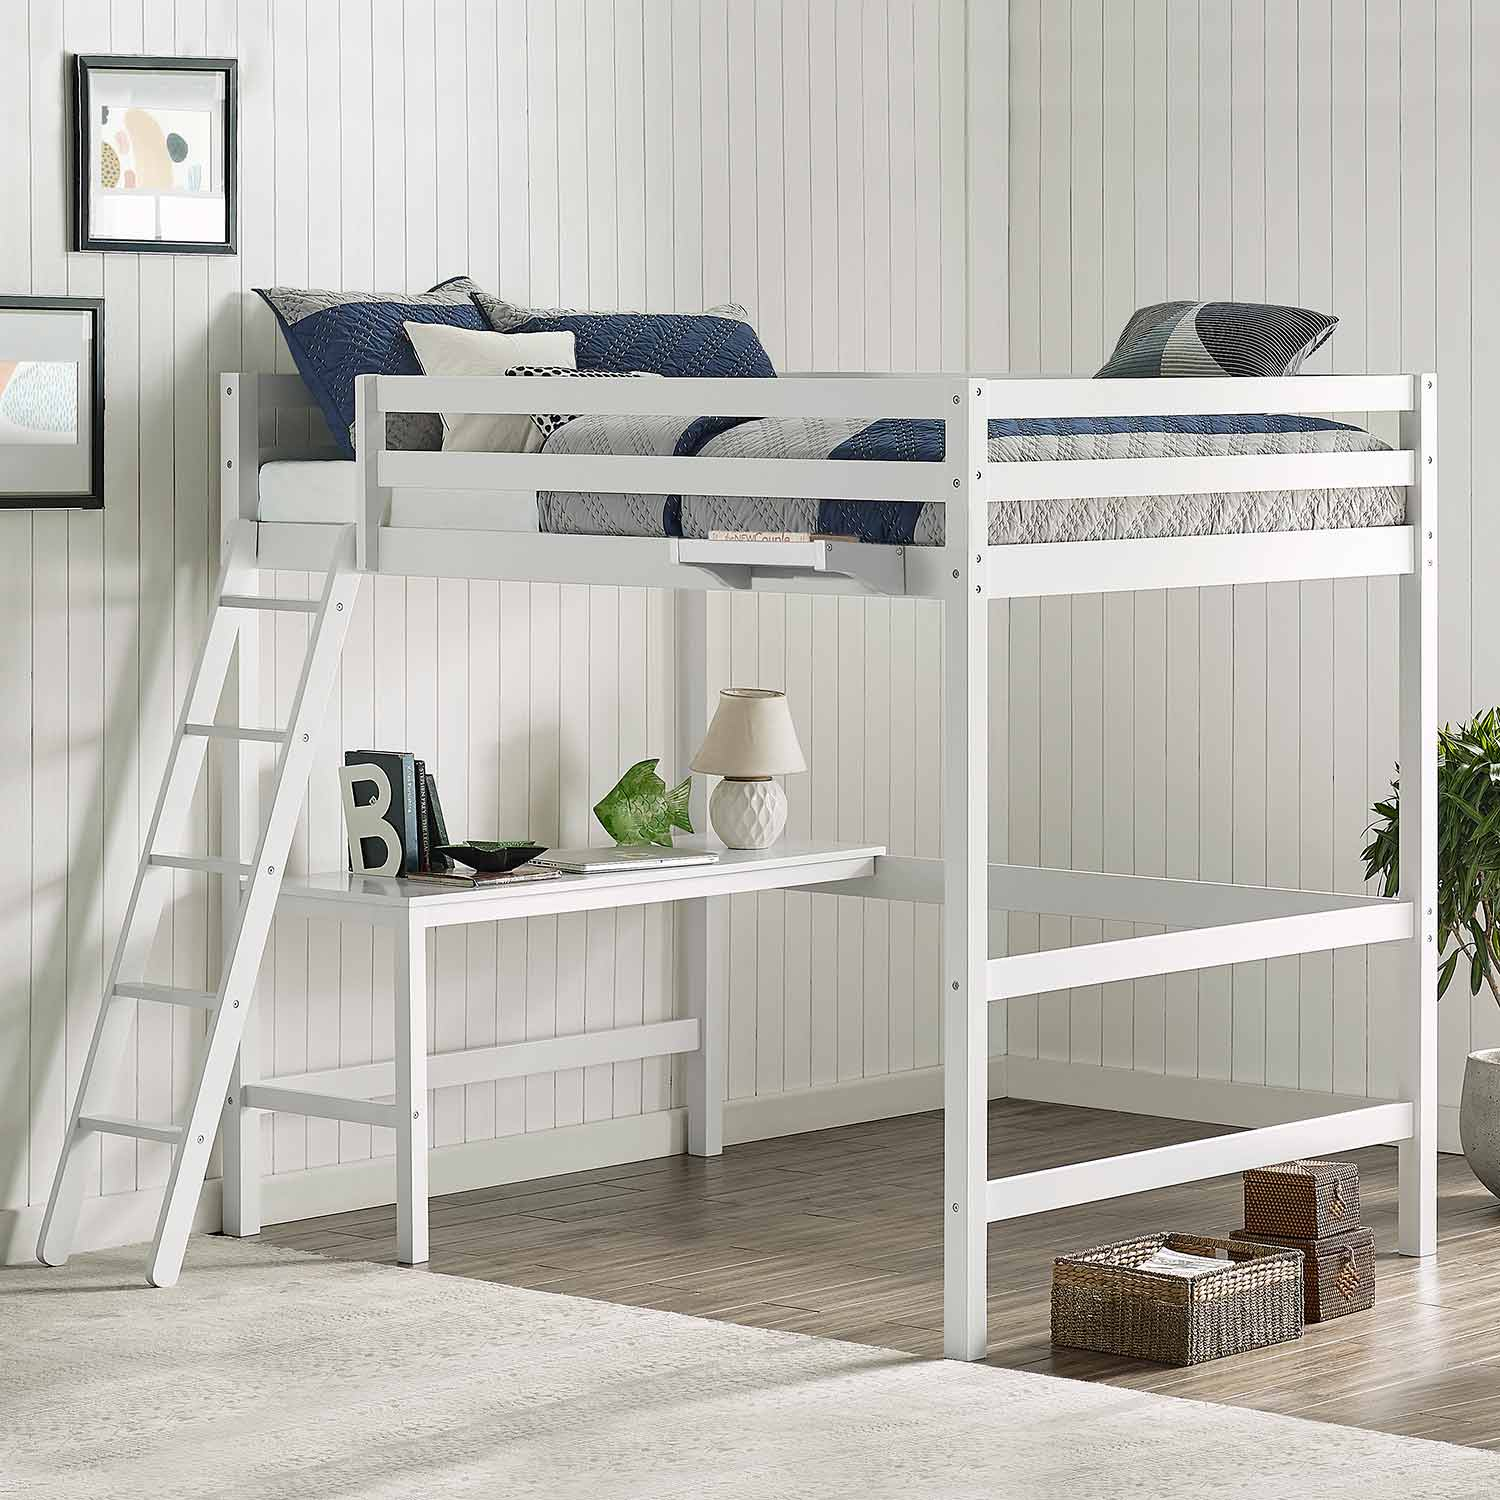 Hillsdale Caspian Full Loft Bed with Hanging Nightstand - White